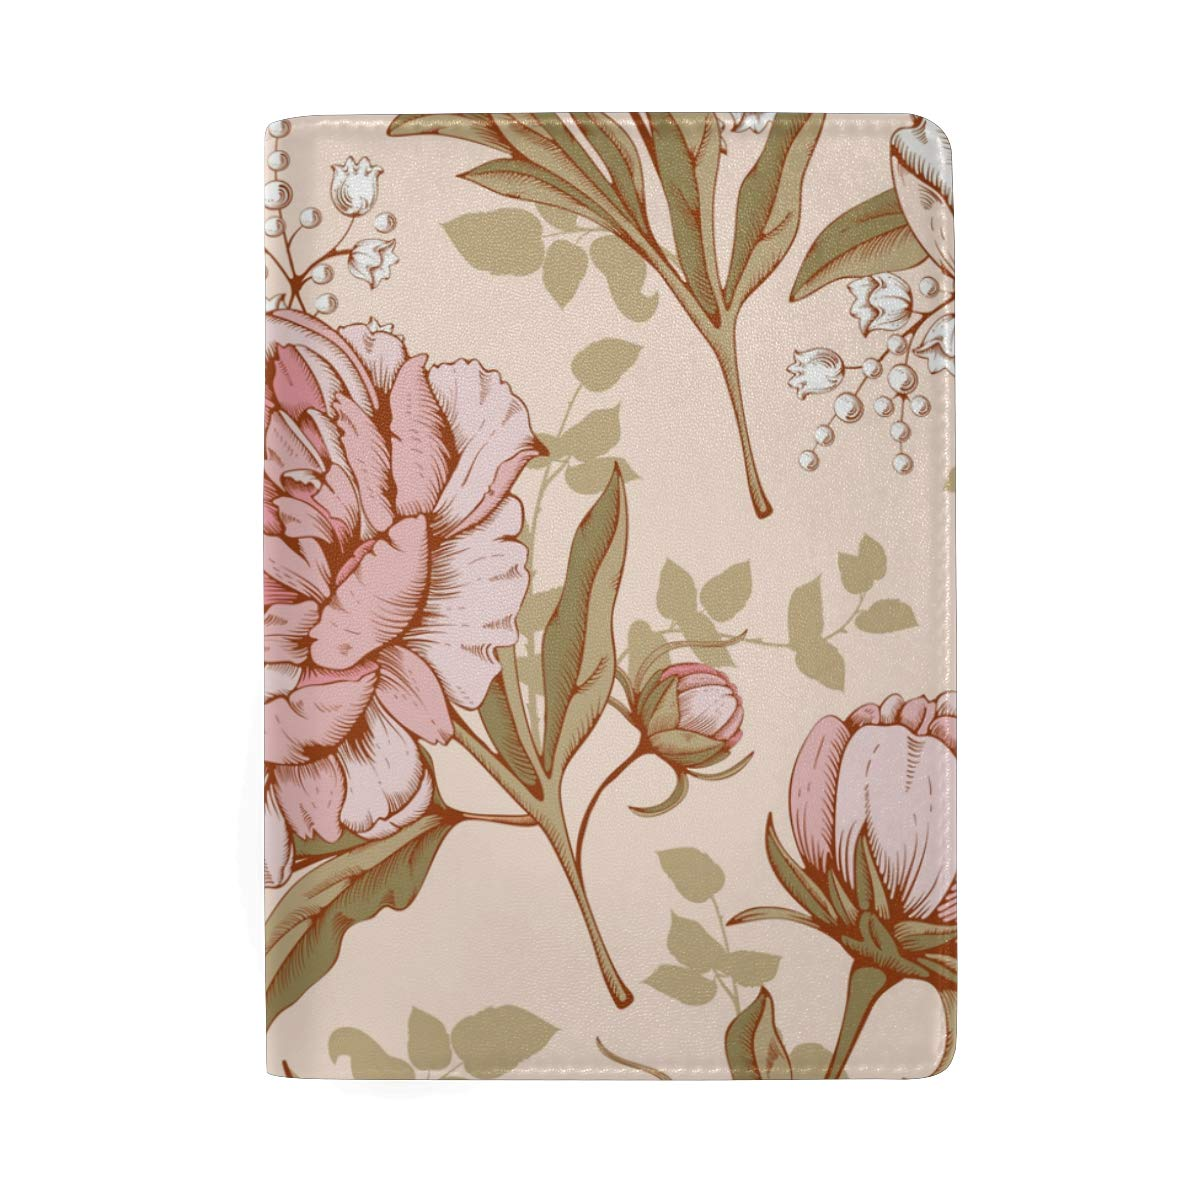 Flower Pattern Peonies Floral Leather Passport Holder Cover Case Protector for Men Women Travel with Slots